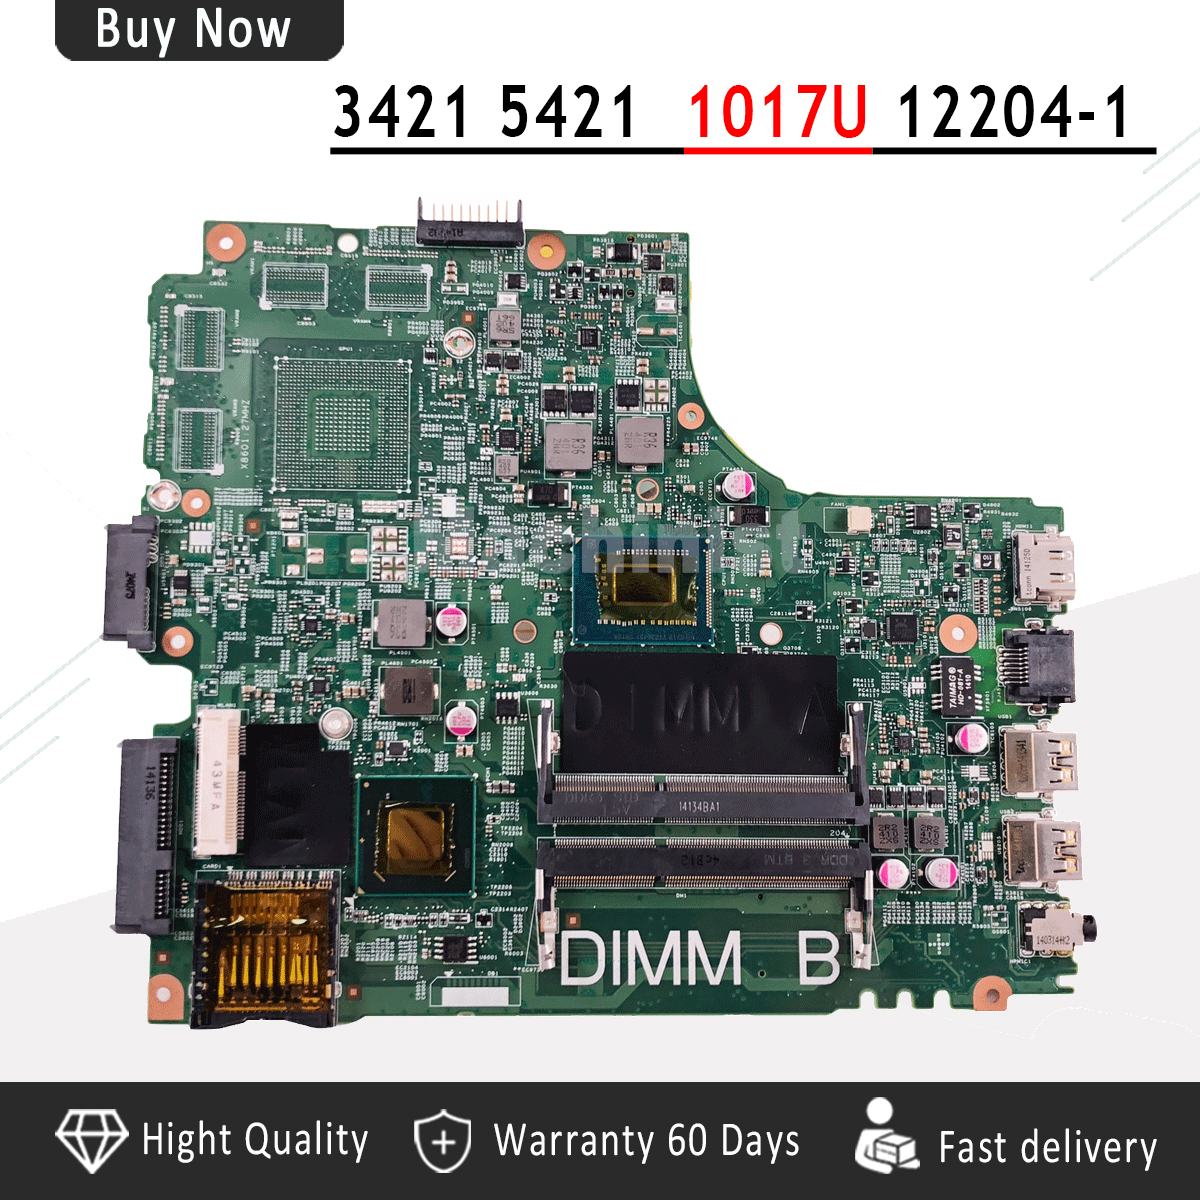 CN-0PTNPF PTNPF FOR DELL INSPIRON 3421 5421 laptop motherboard SR10A 1017U mainboard 12204-1 DNE40-CR PWB:5J8Y4 REV:A00CN-0PTNPF PTNPF FOR DELL INSPIRON 3421 5421 laptop motherboard SR10A 1017U mainboard 12204-1 DNE40-CR PWB:5J8Y4 REV:A00